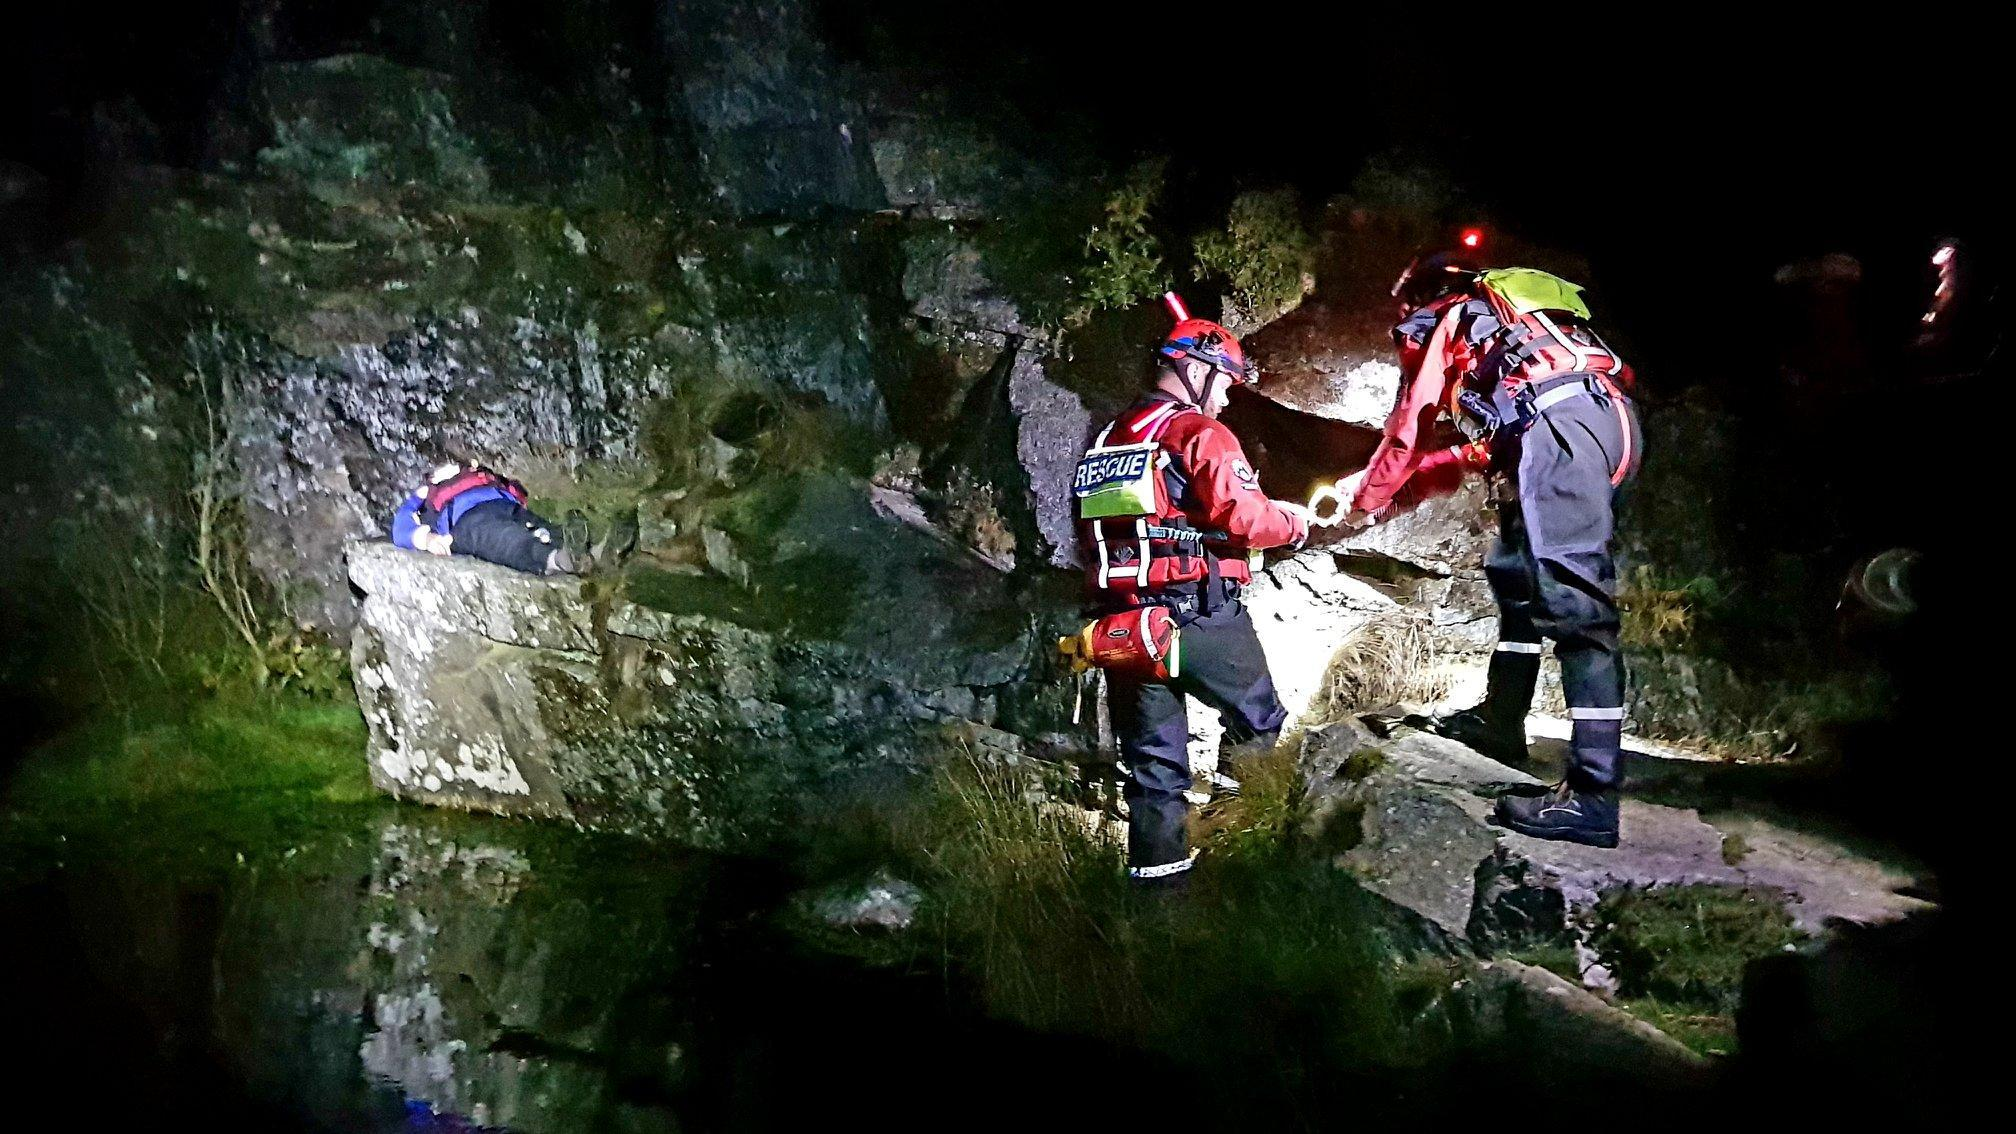 Dartmoor Rescuers begin to enter the water at Haytor Quarry to reach a casualty